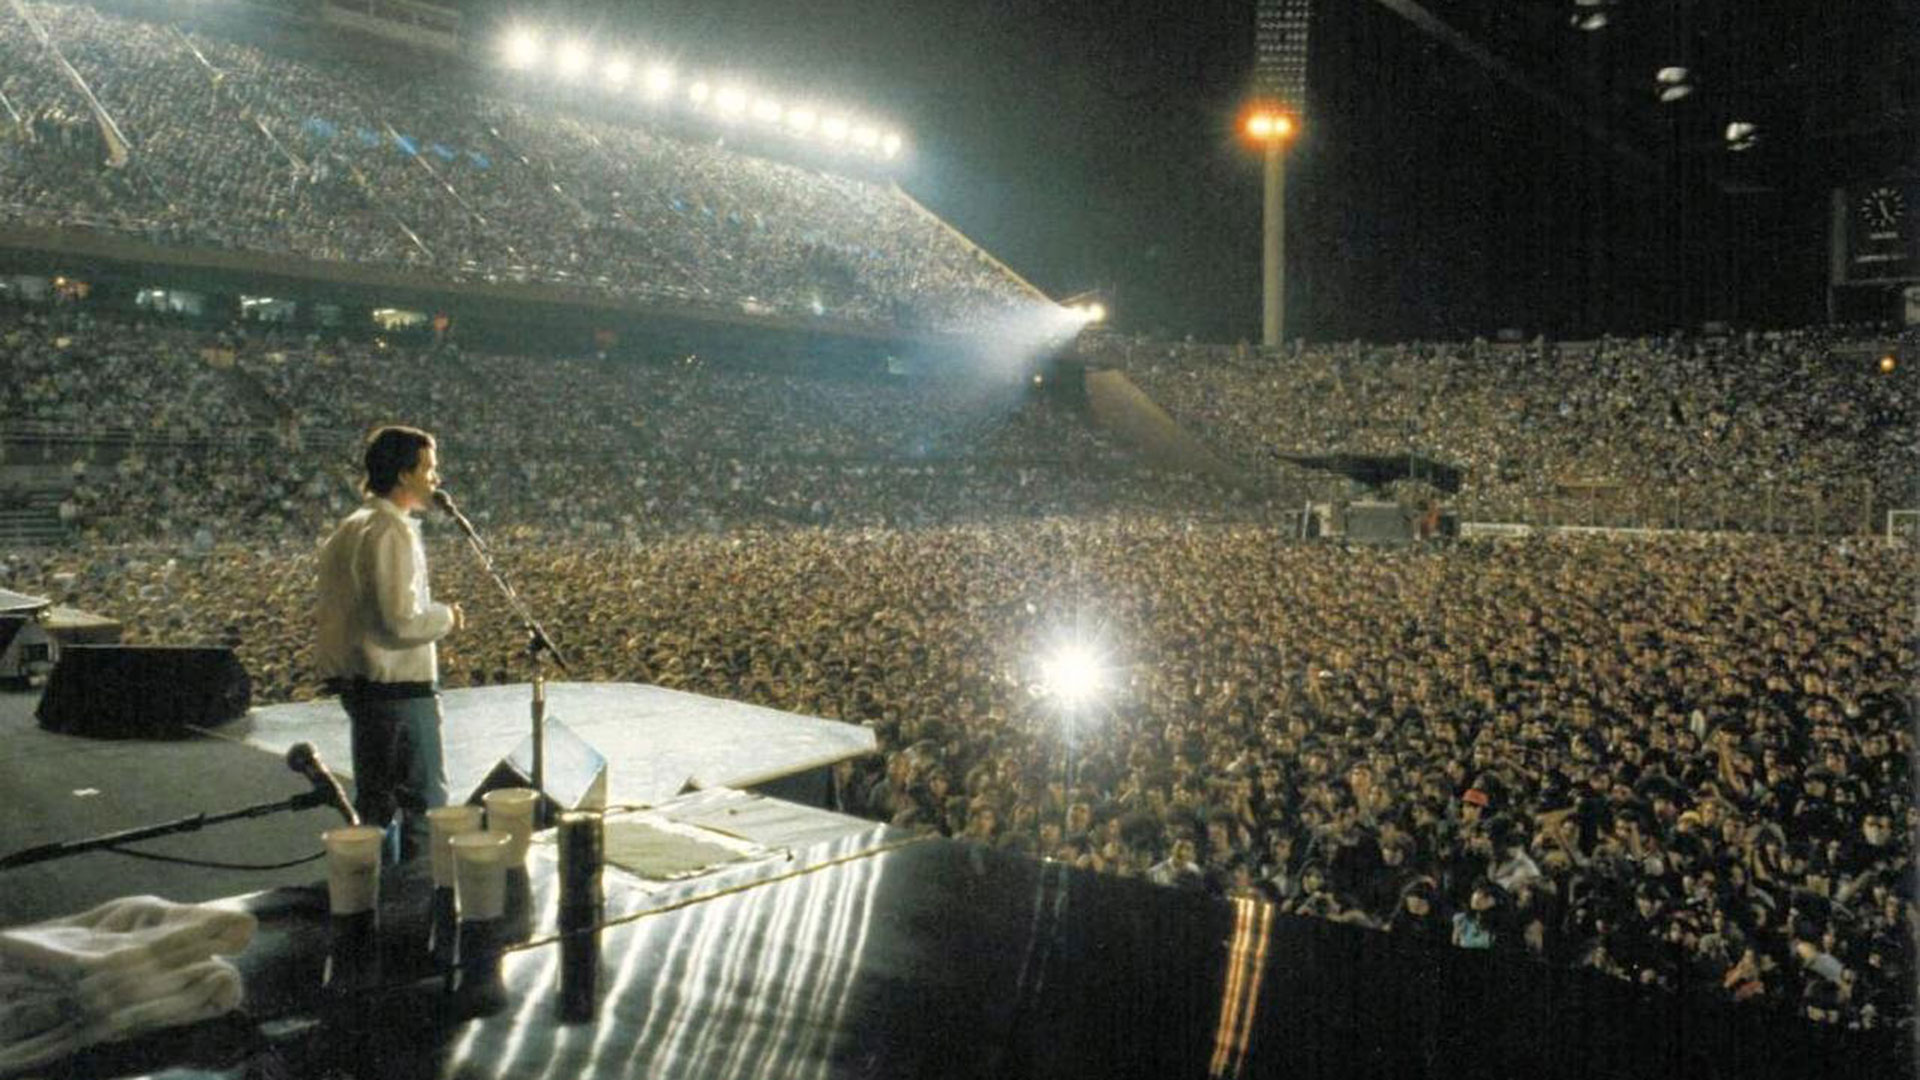 Queen en el estadio de Vélez